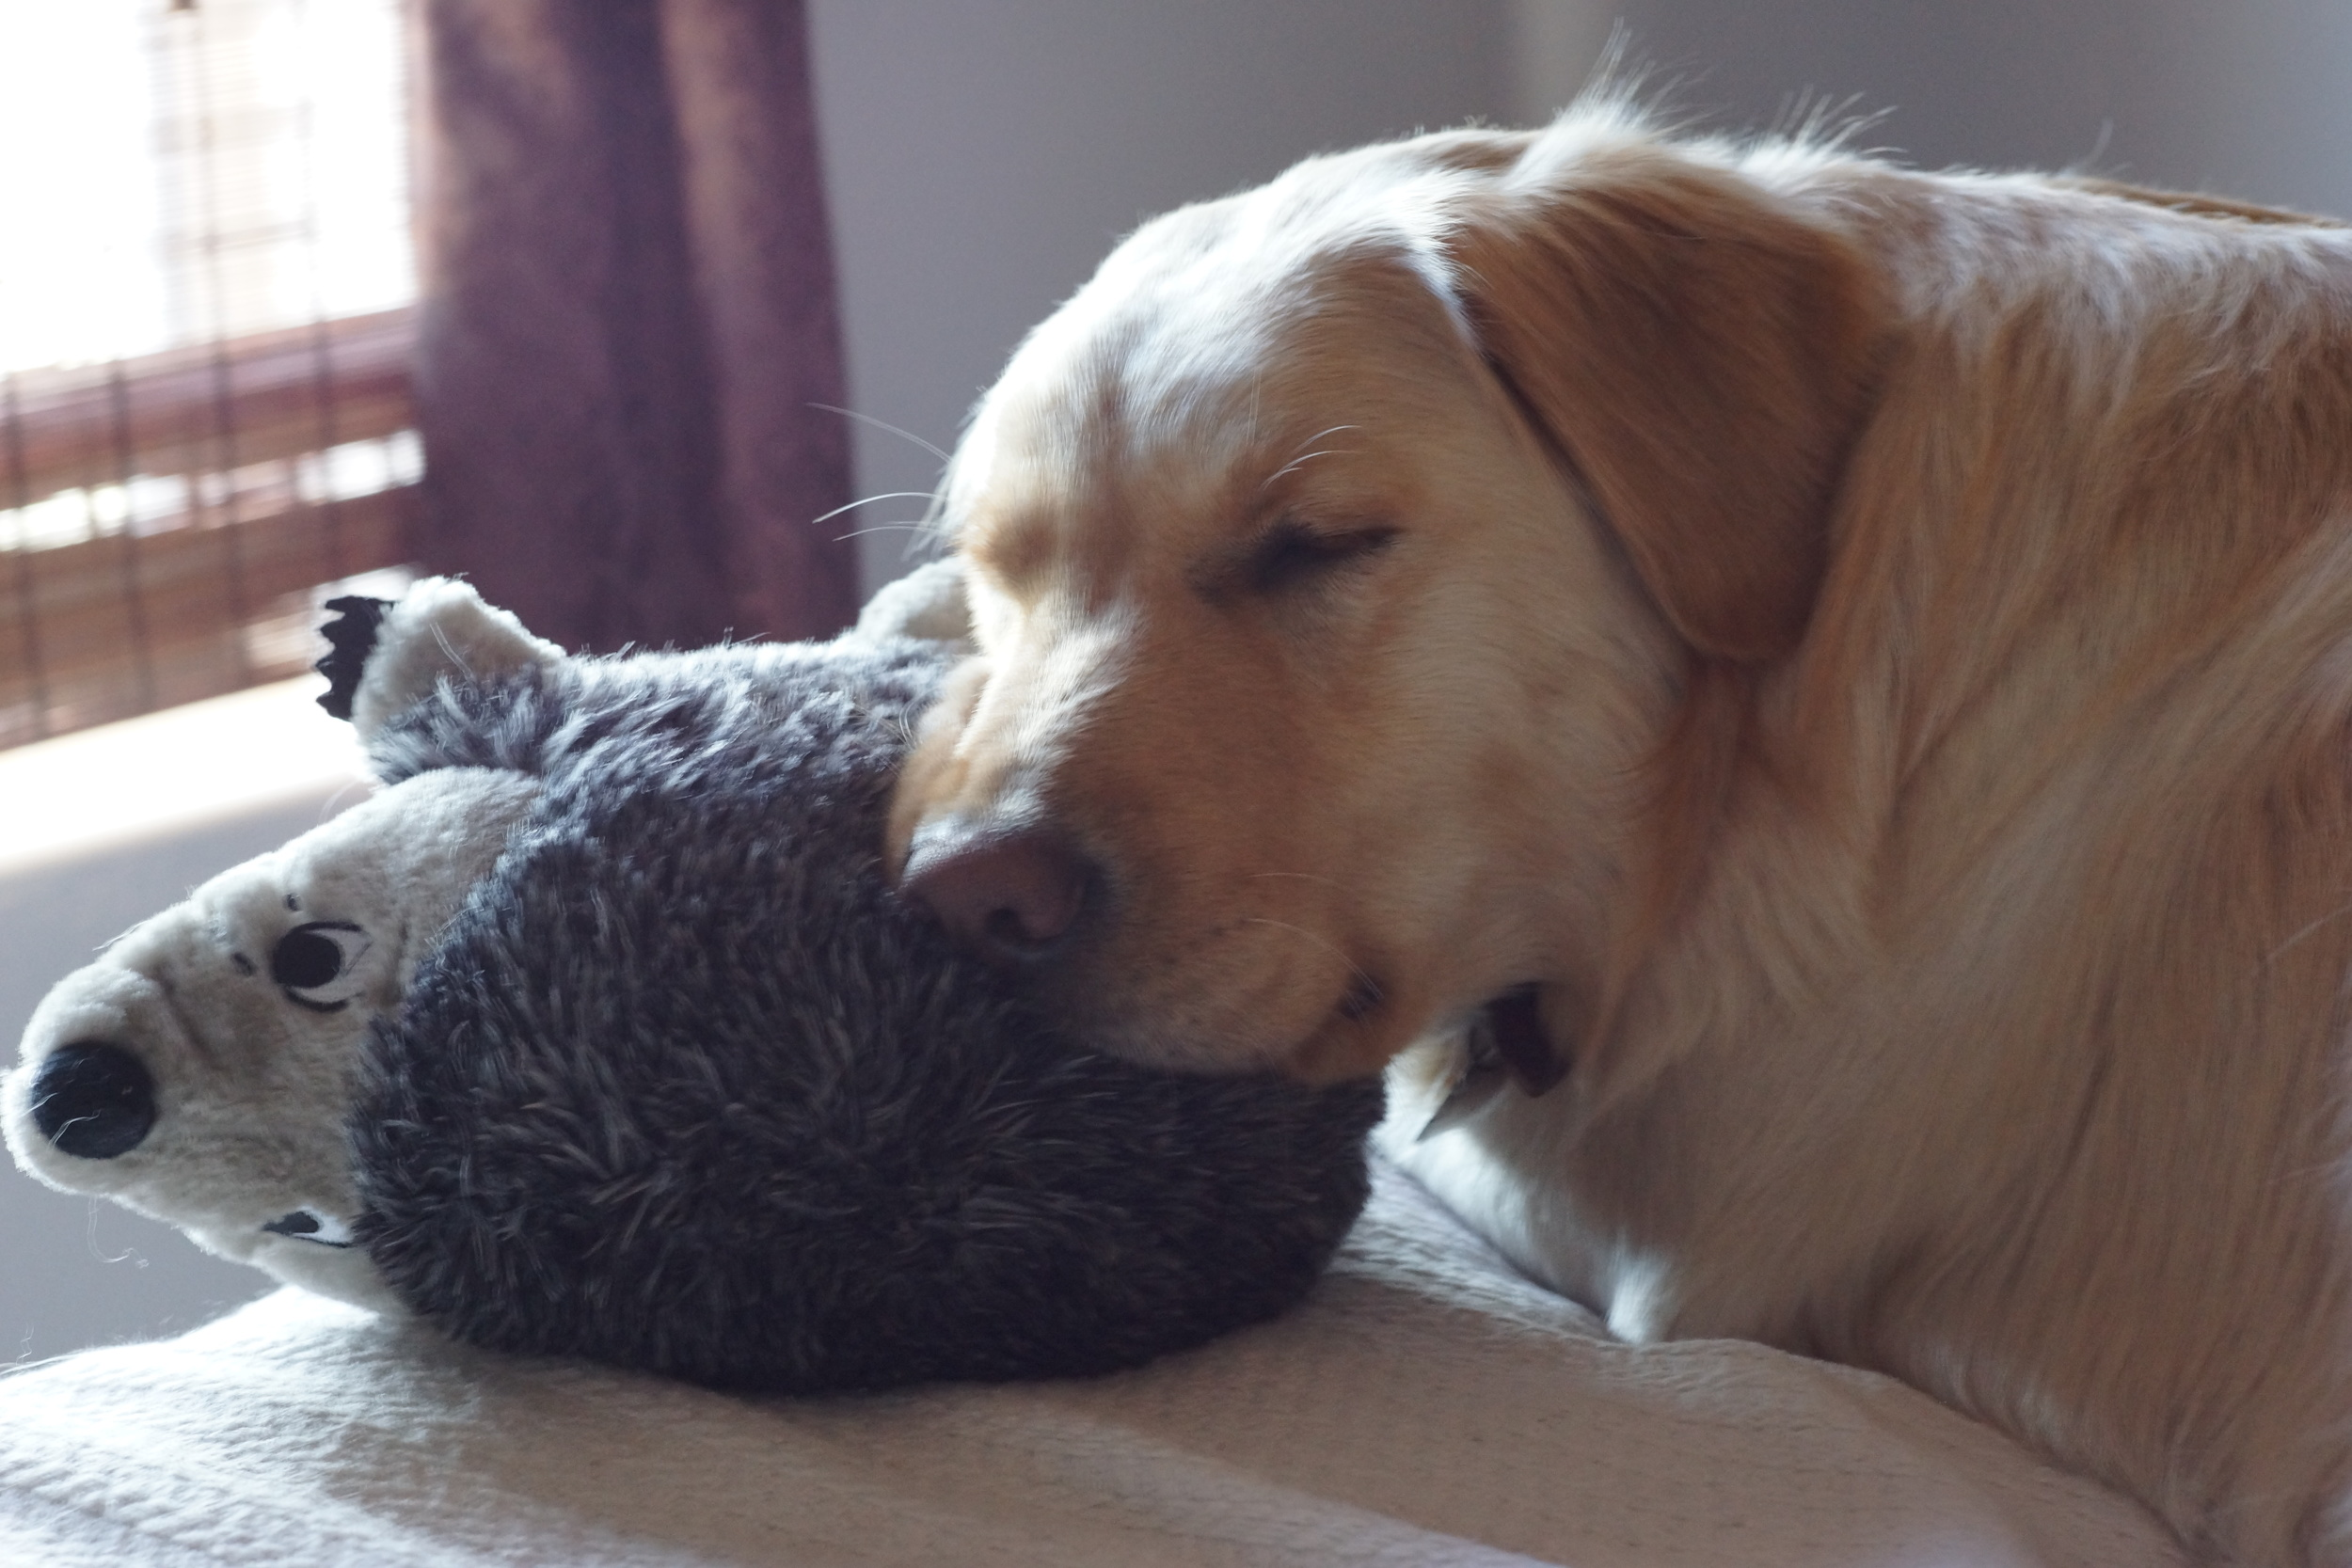 Rooki and the bear